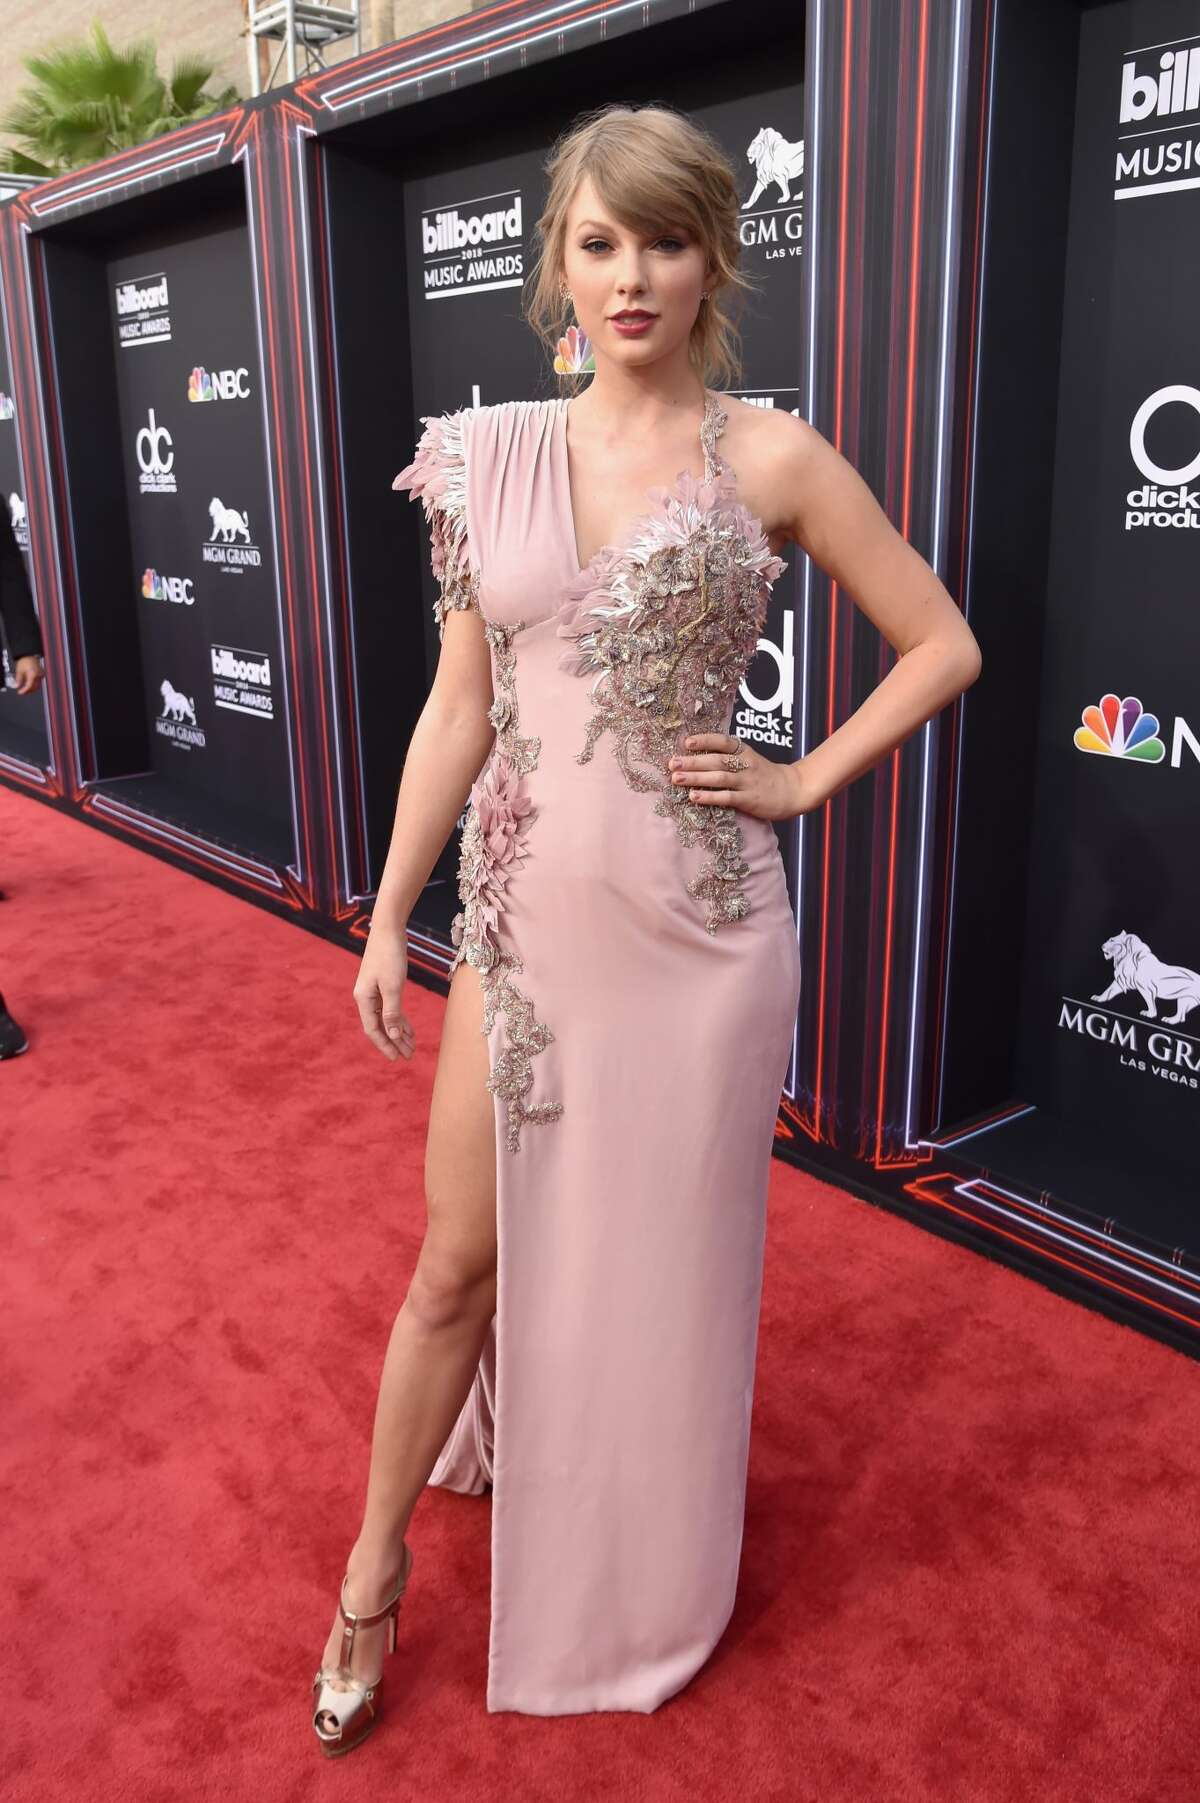 Worst:These awkwardly placed embellishments on Taylor Swift's dress are far from flattering.